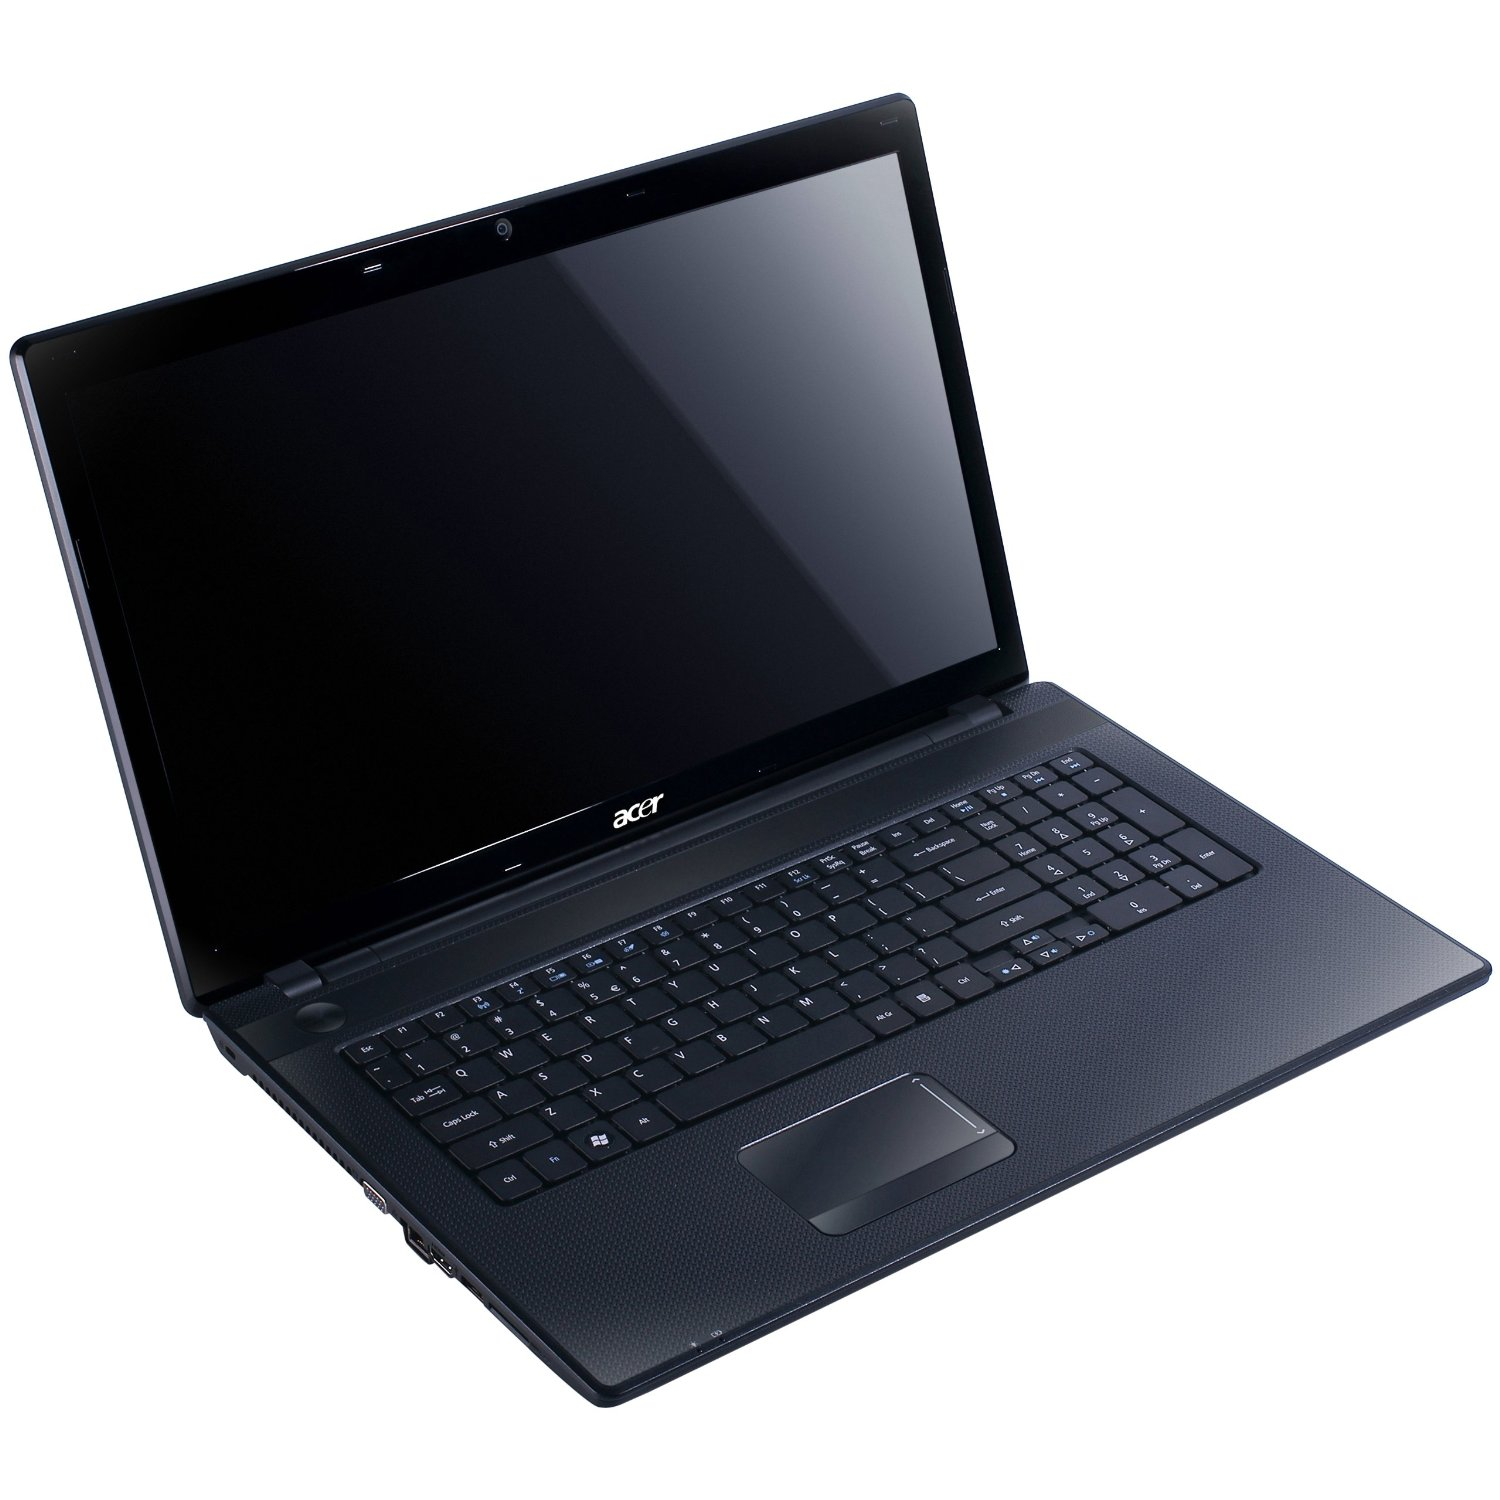 ACER ASPIRE 7739G ATHEROS WLAN WINDOWS DRIVER